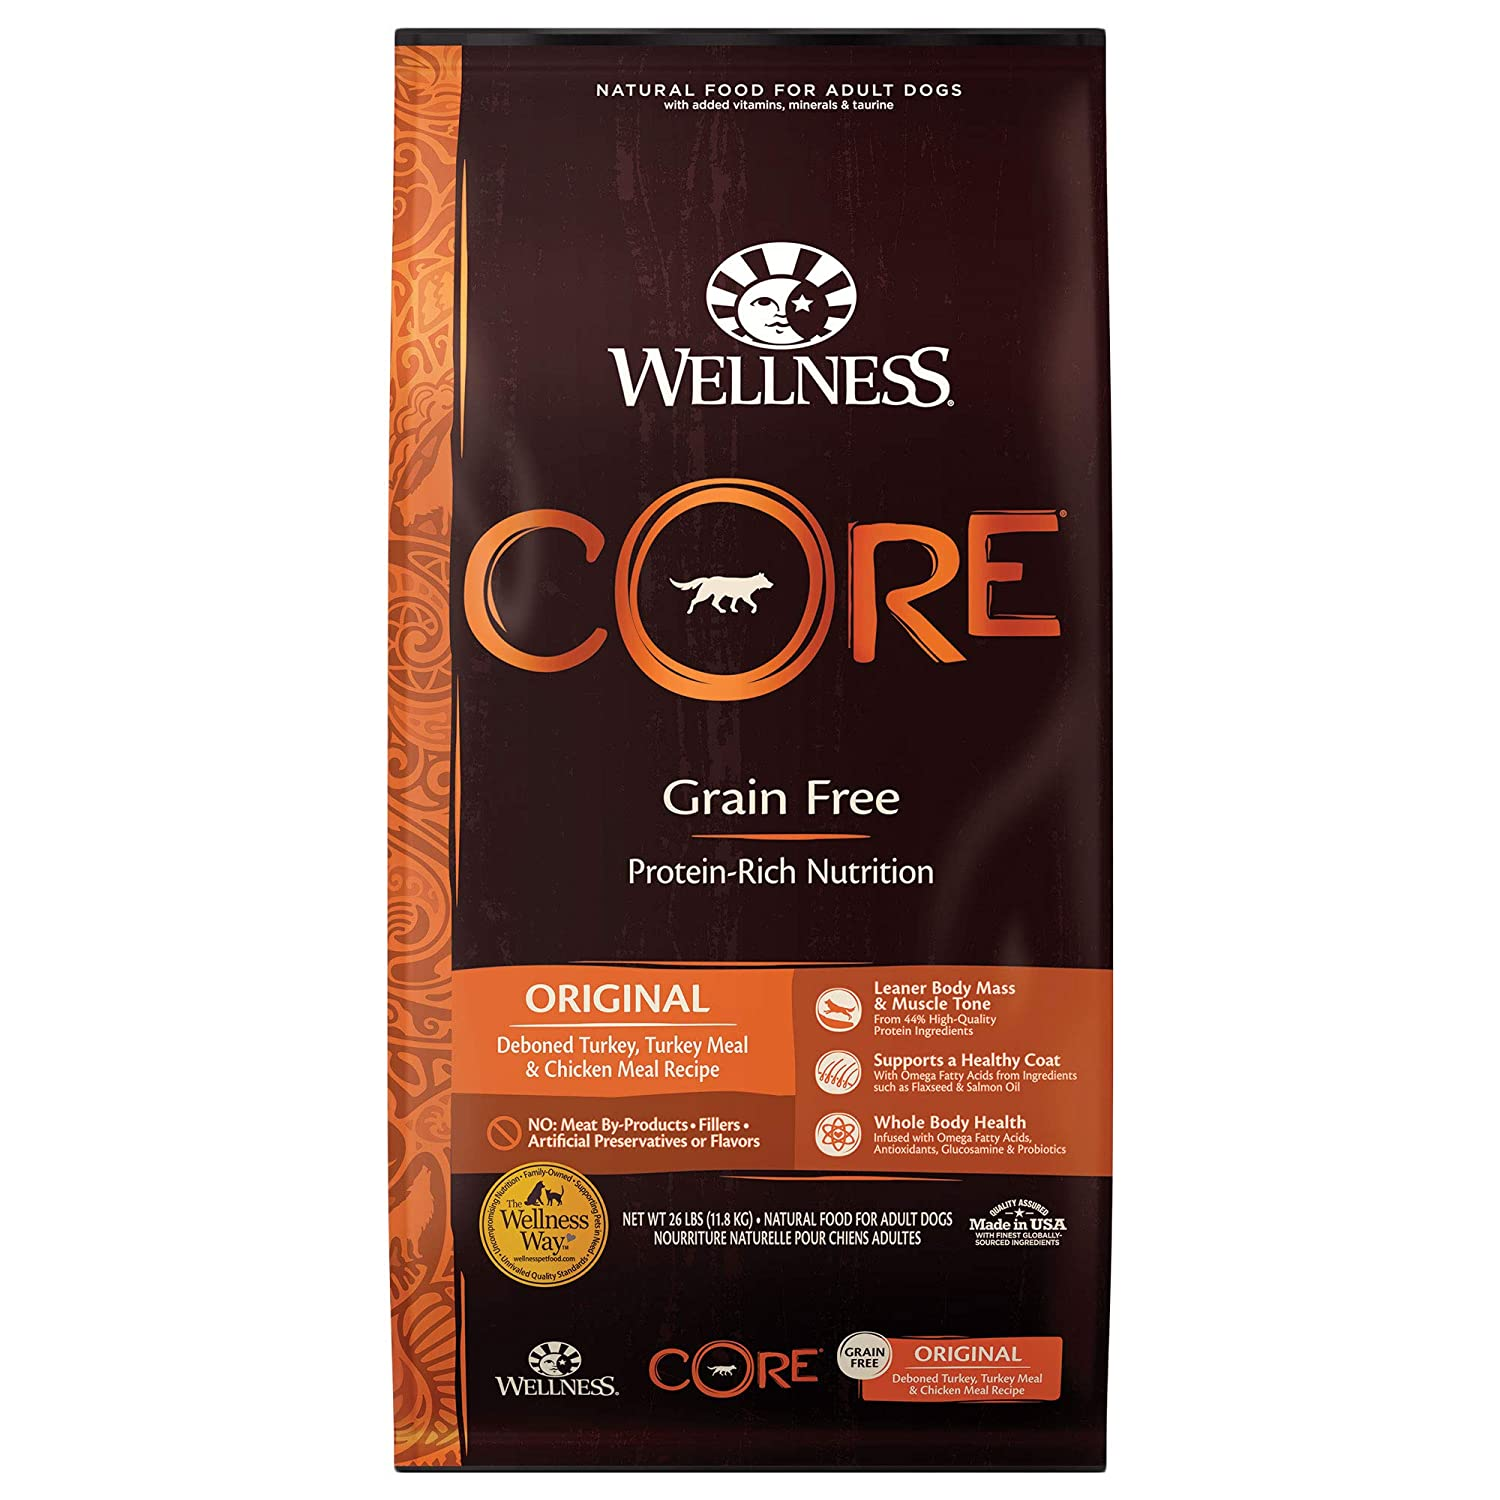 4.Wellness Core Natural Grain-Free Dry Dog Food Original Turkey & Chicken